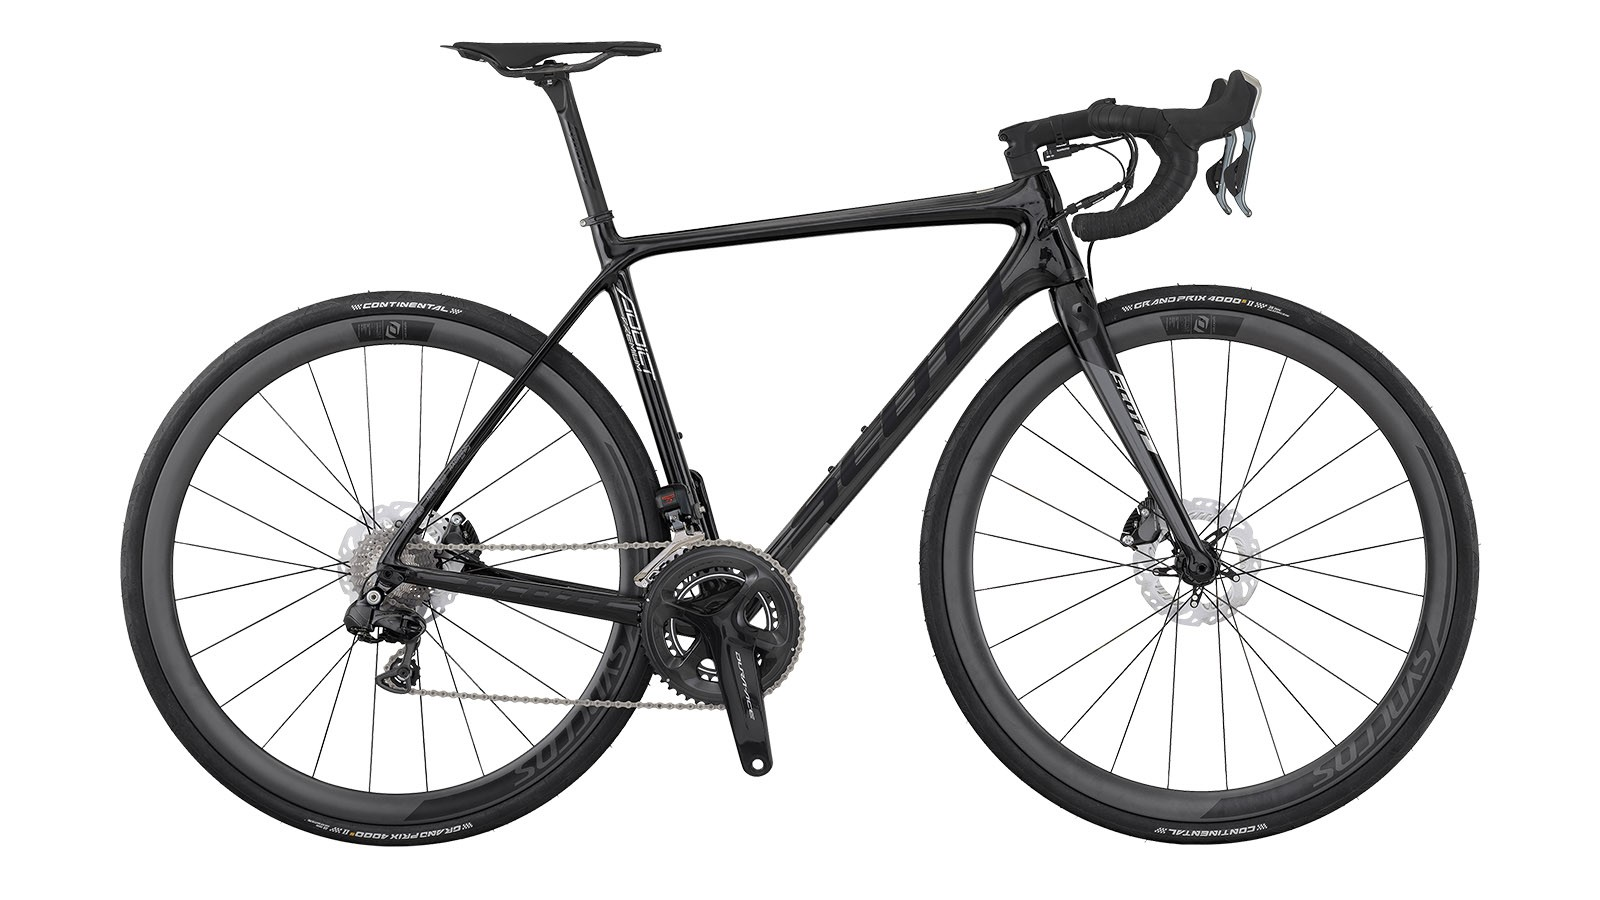 The Addict Premium Disc's frame and fork are made with Scott's highest-grade carbon and are claimed to weigh only 60g more than the rim brake version. The weight of the complete build is yet to be announced